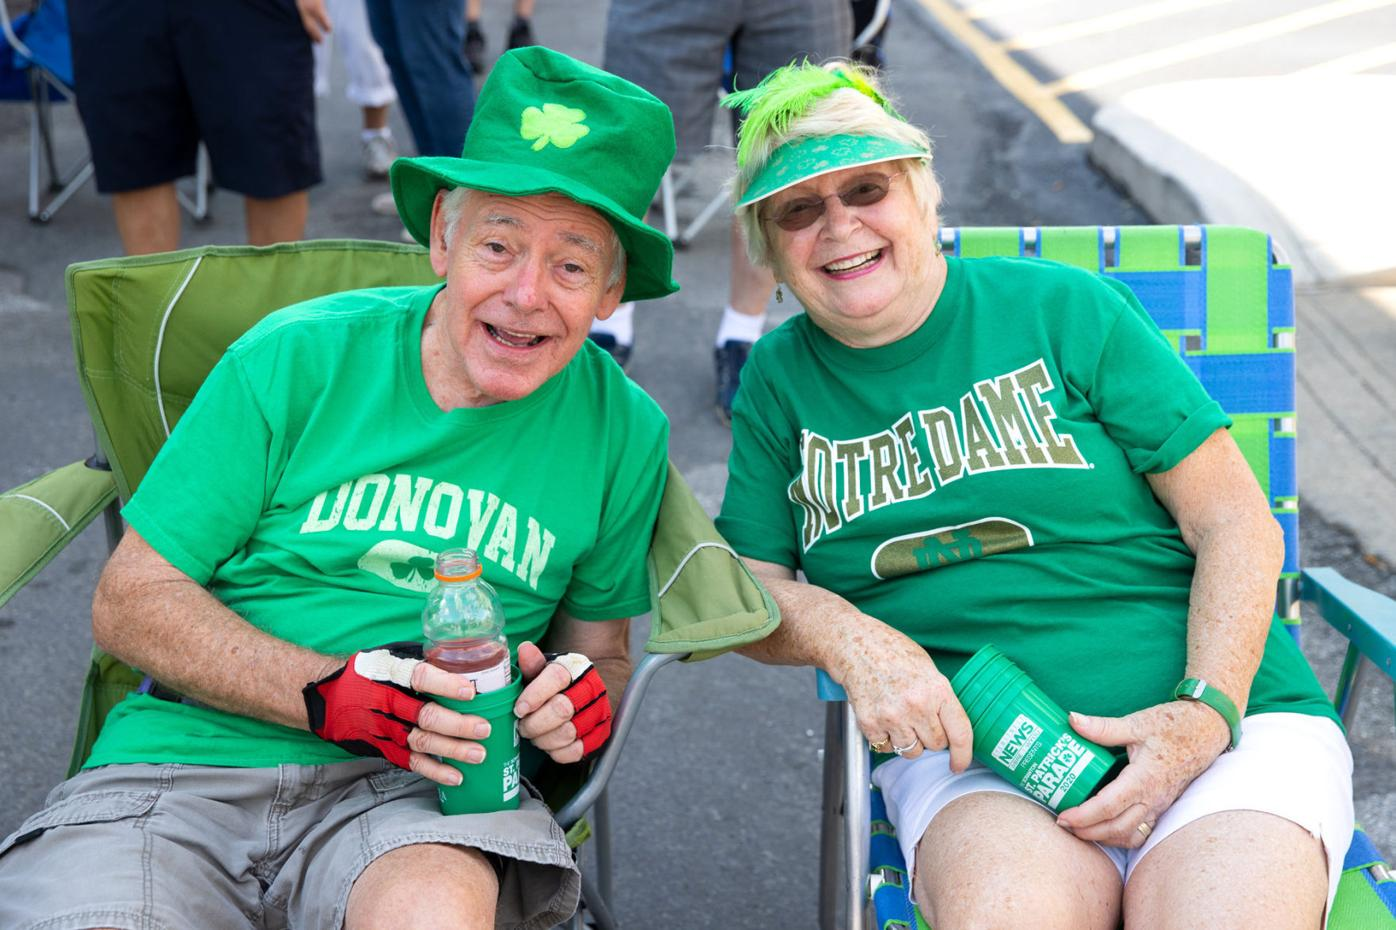 Out&About at the Halfway to St. Patrick's Day Parade in downtown Scranton